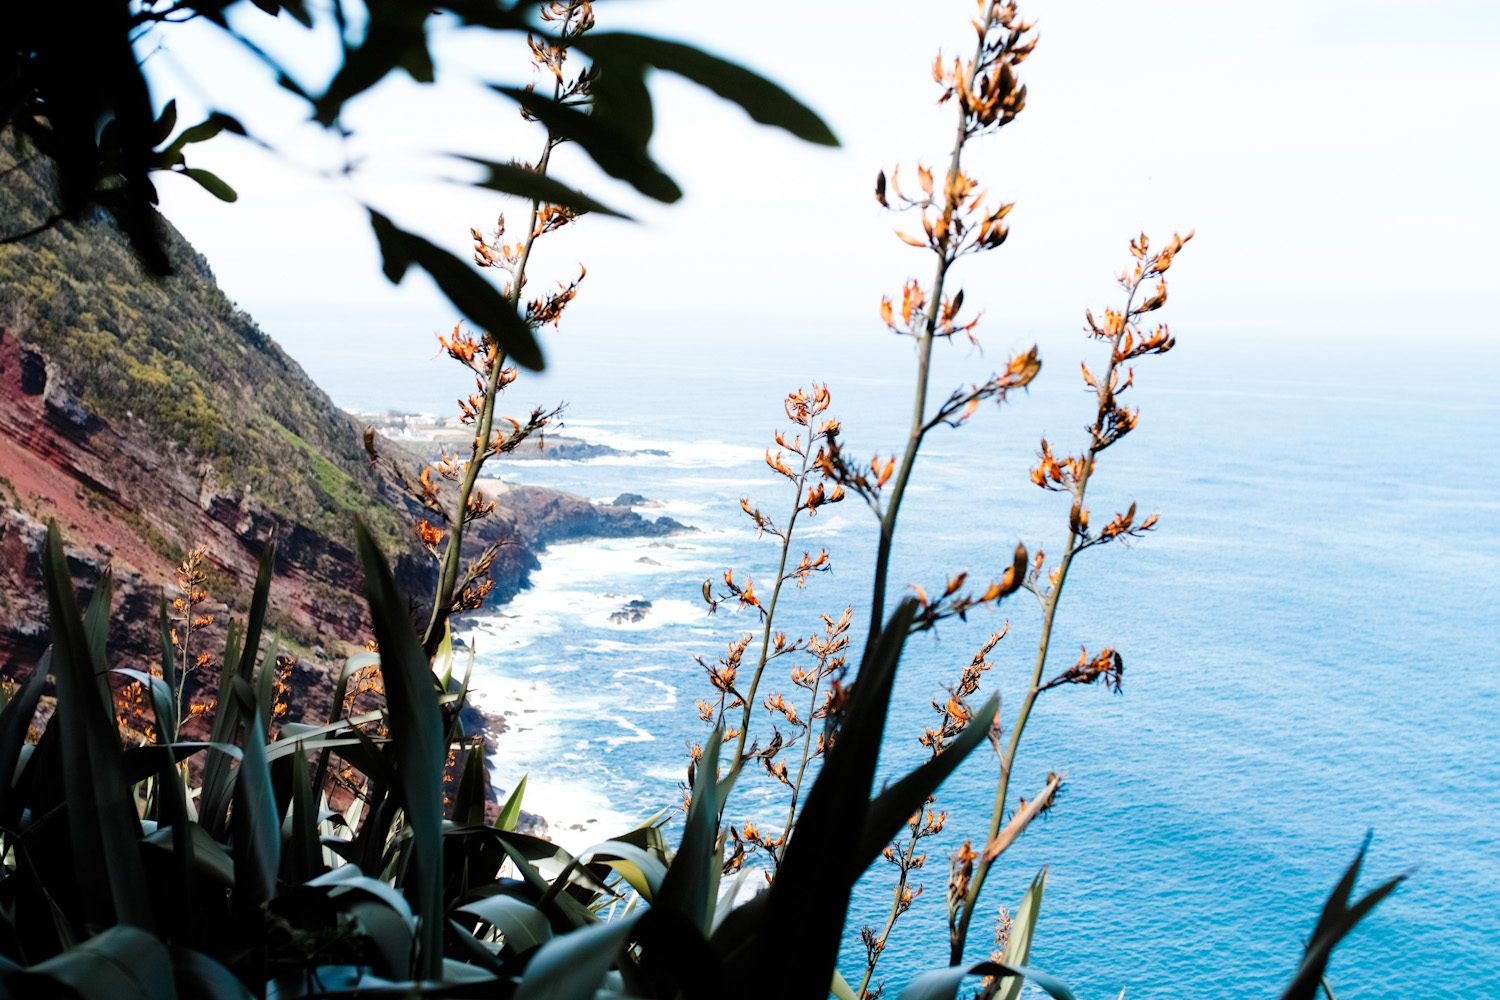 panorama_landscapes_azores_thevoyageur-46